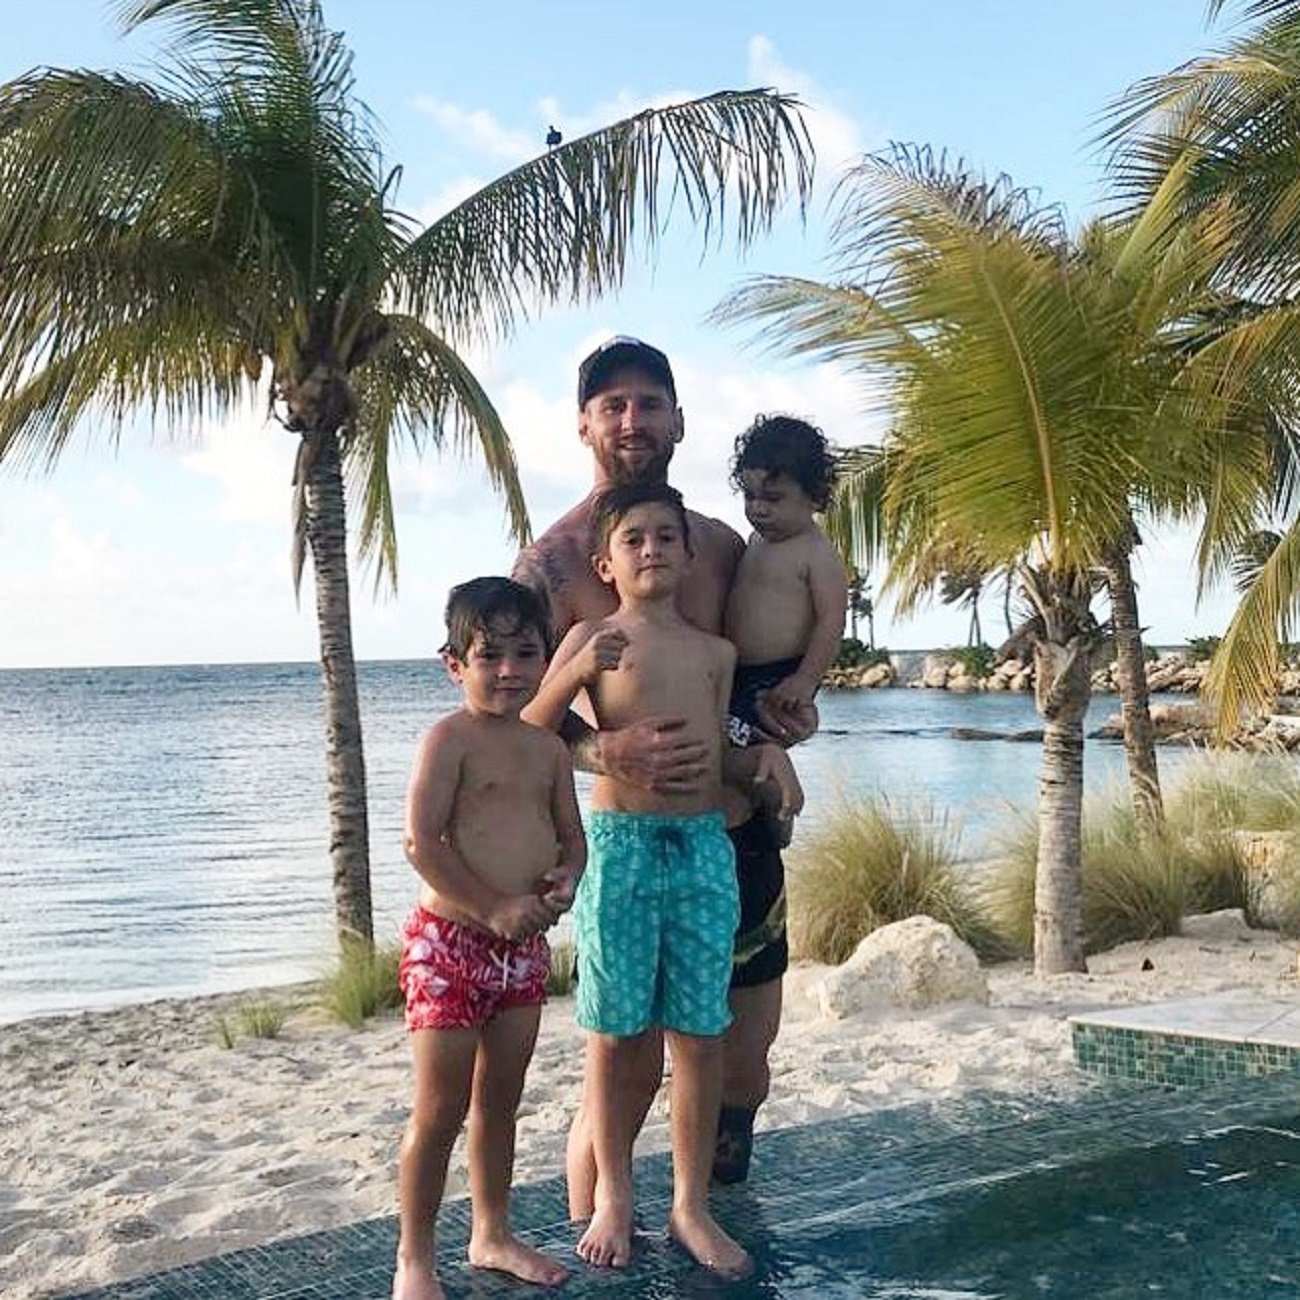 That feeling when: the kids are playing beach football, with some dad called Leo Messi